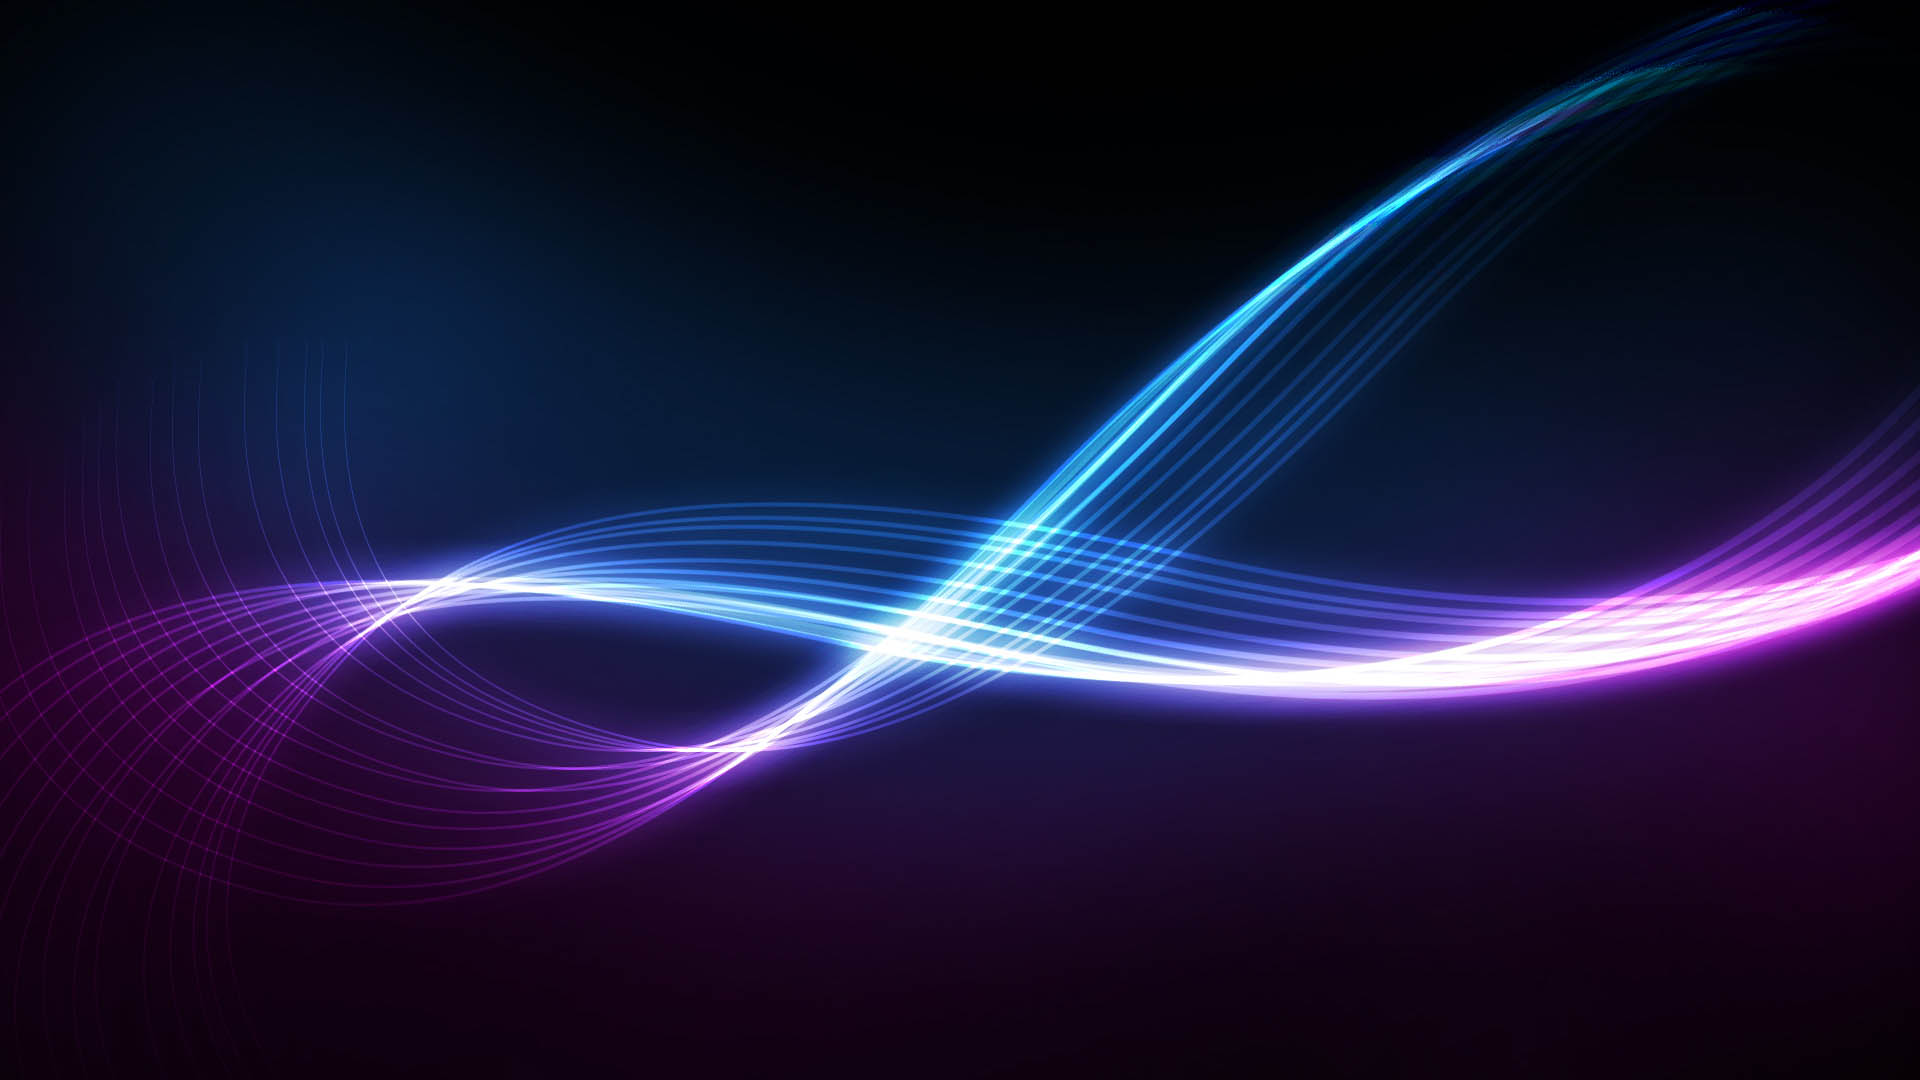 Abstract 1080p - Wallpaper, High Definition, High Quality ...